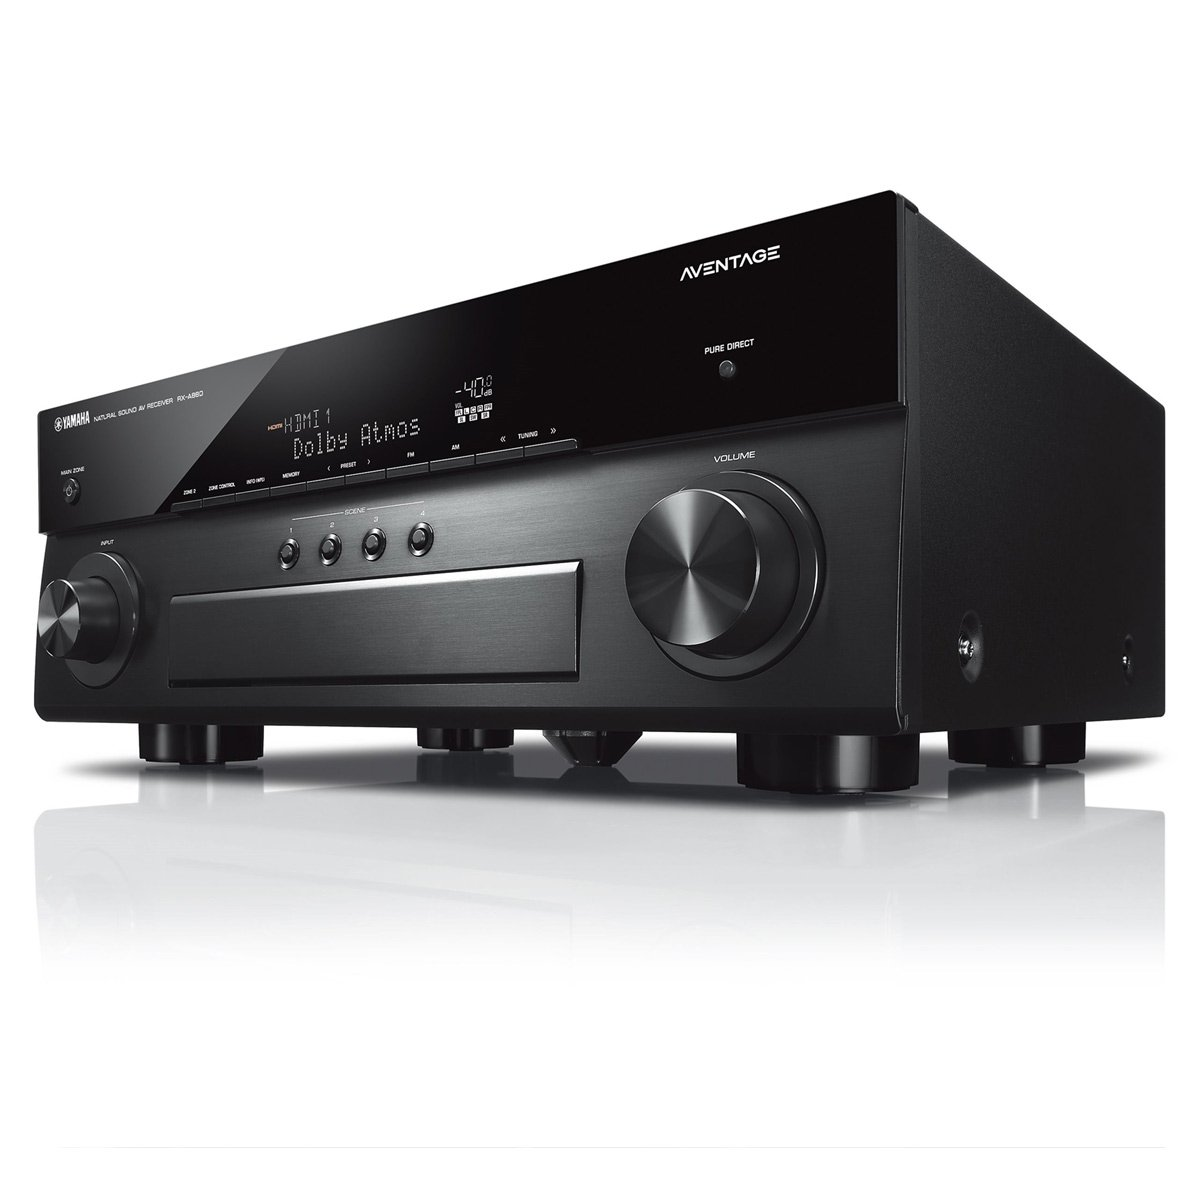 Yamaha RX-A880 Premium Audio & Video Component Receiver - Black by Yamaha Audio (Image #4)